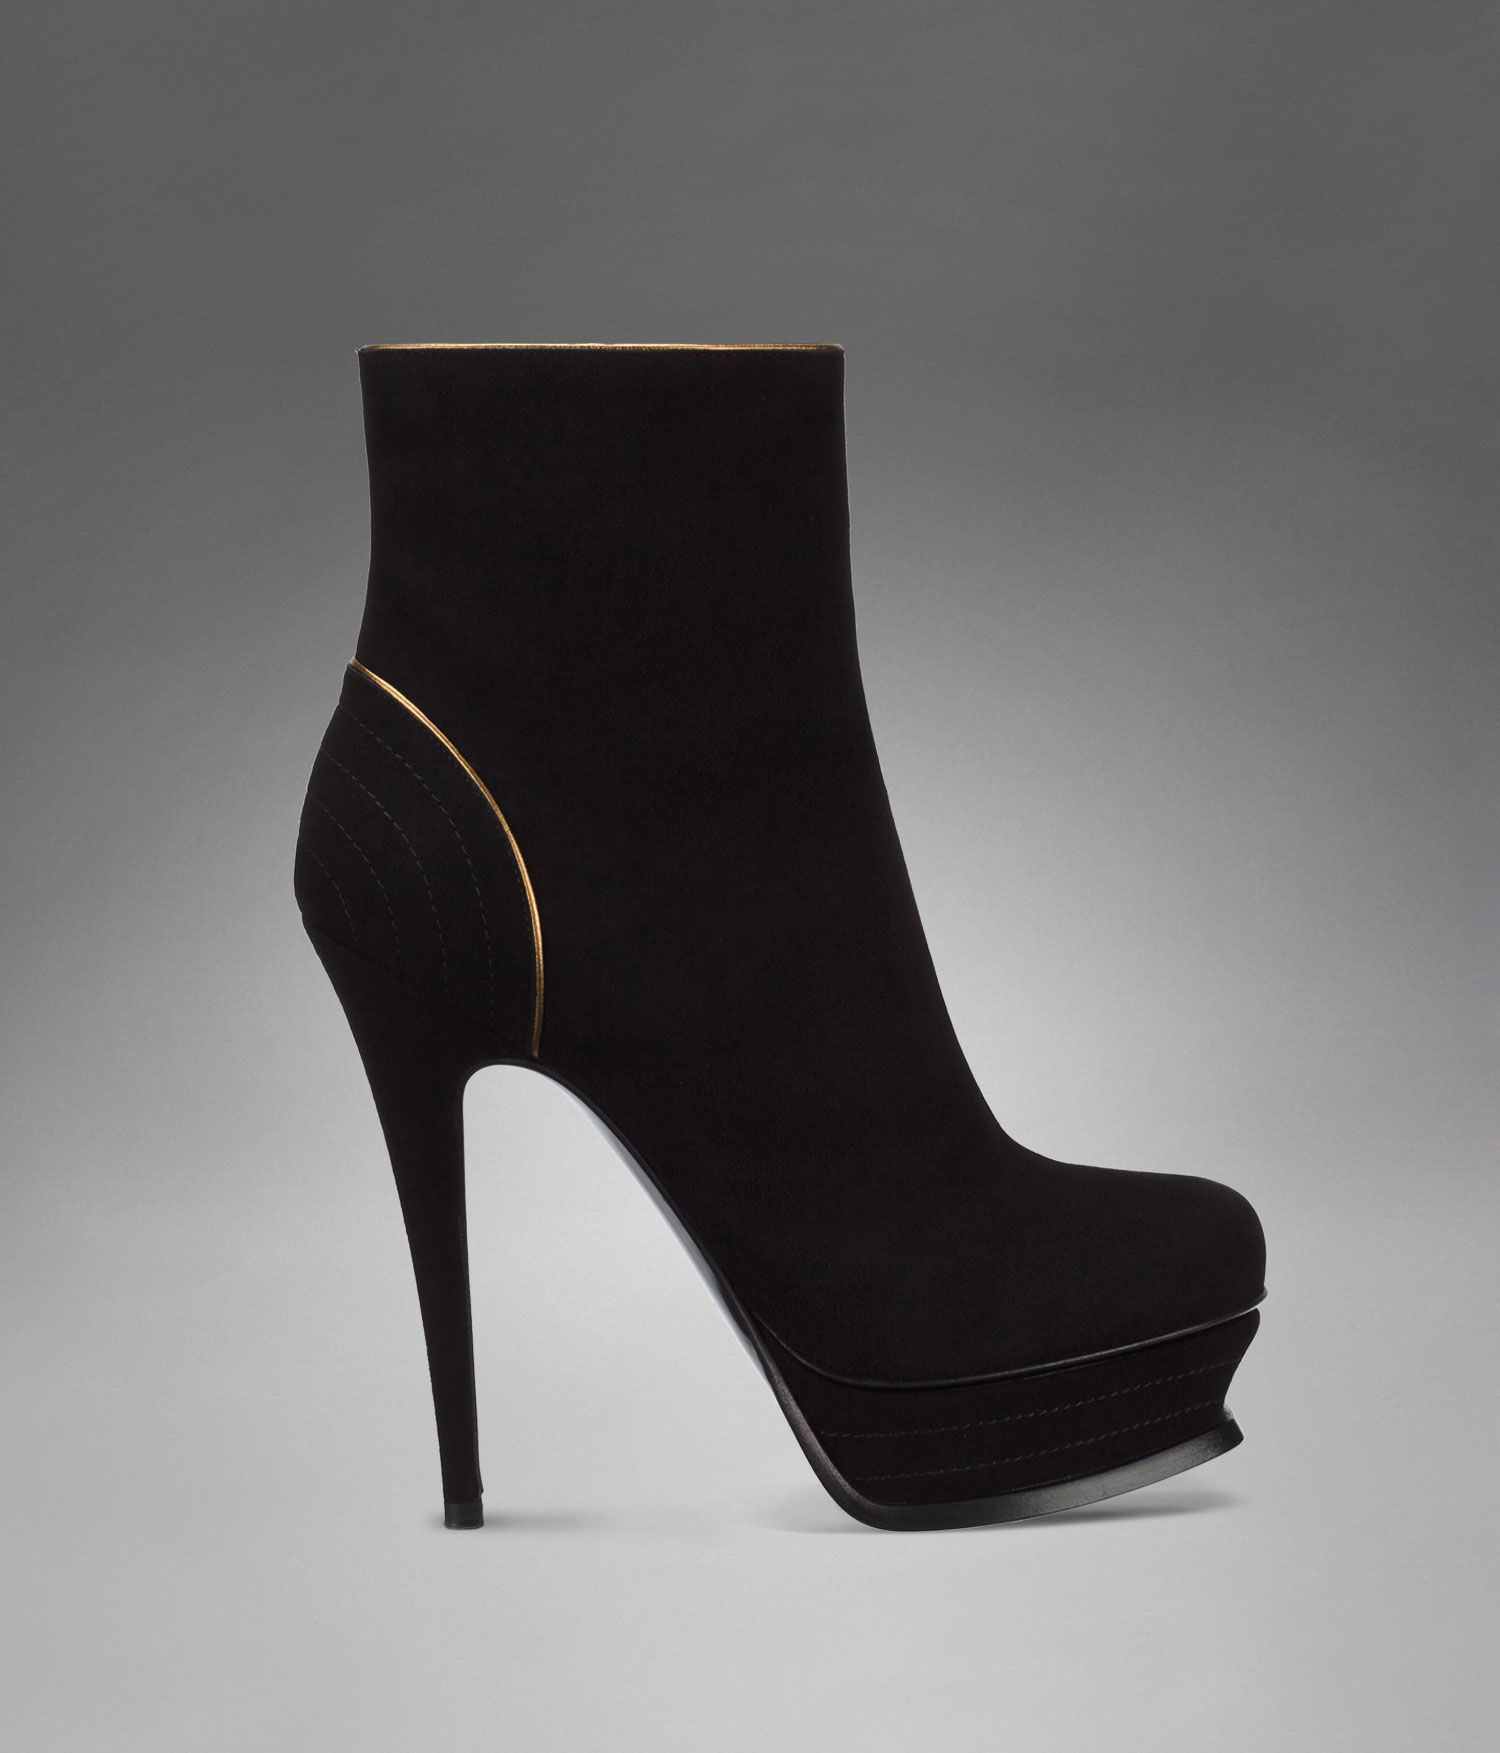 e2a71090710 High heel black suede ankle boot, Yves Saint Laurent, ysl.com, $1225,  ItsGorgeousSheLovesIt.tumblr.com